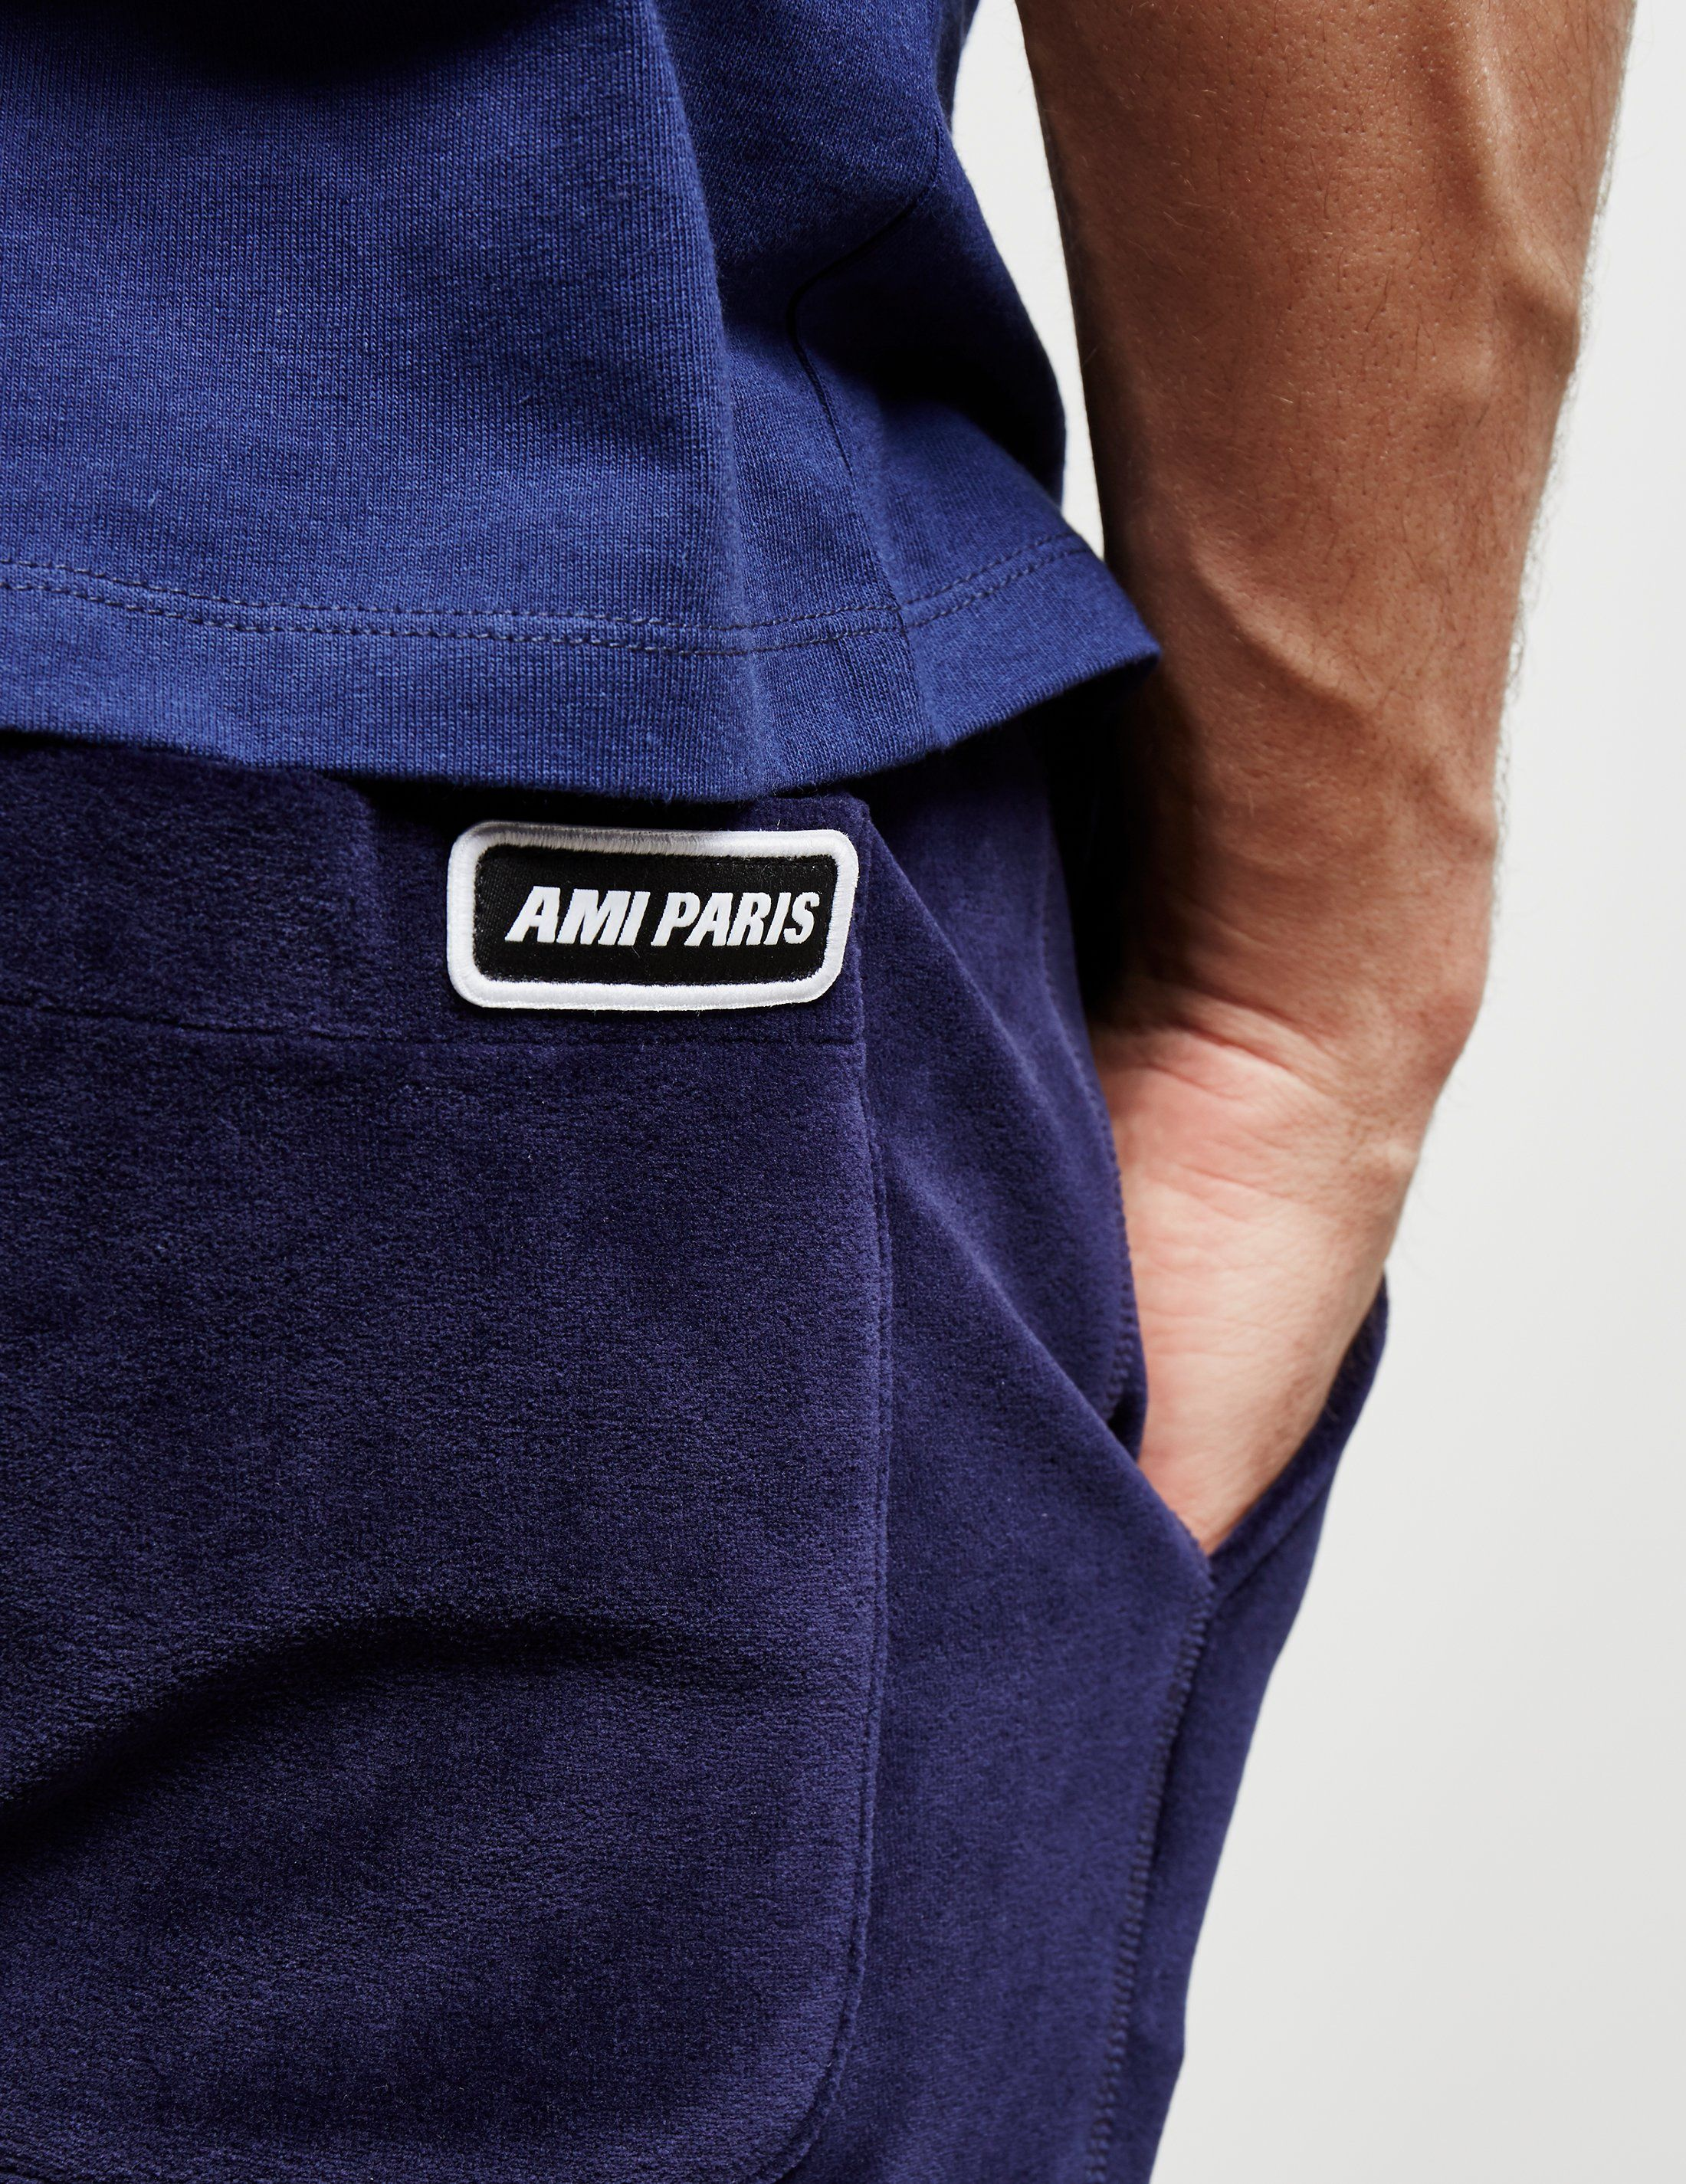 AMI Paris Velvet Track Pants - Online Exclusive